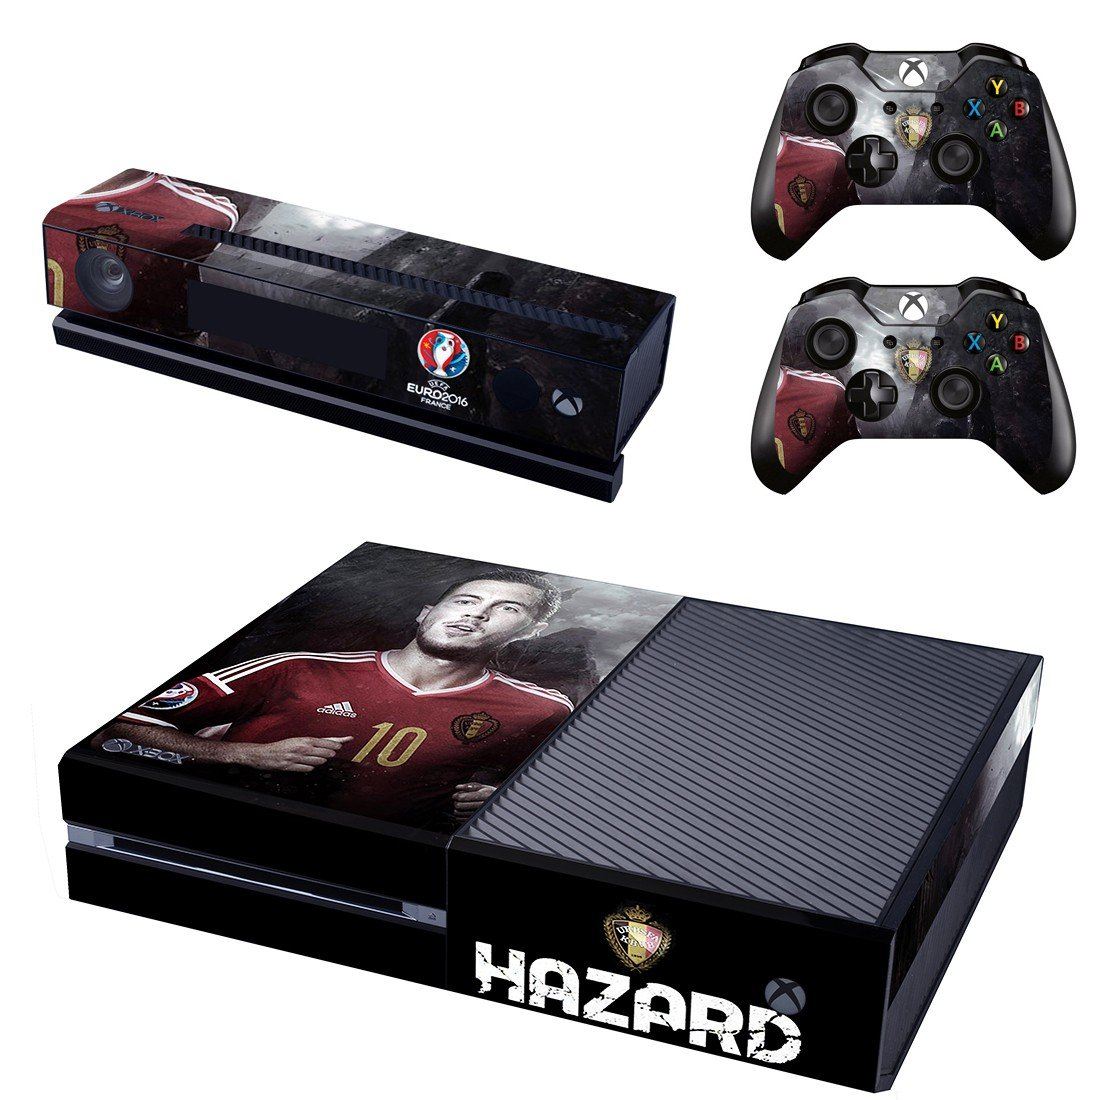 Euro2016 France Hazard skin decal for  Xbox one console and 2 controllers